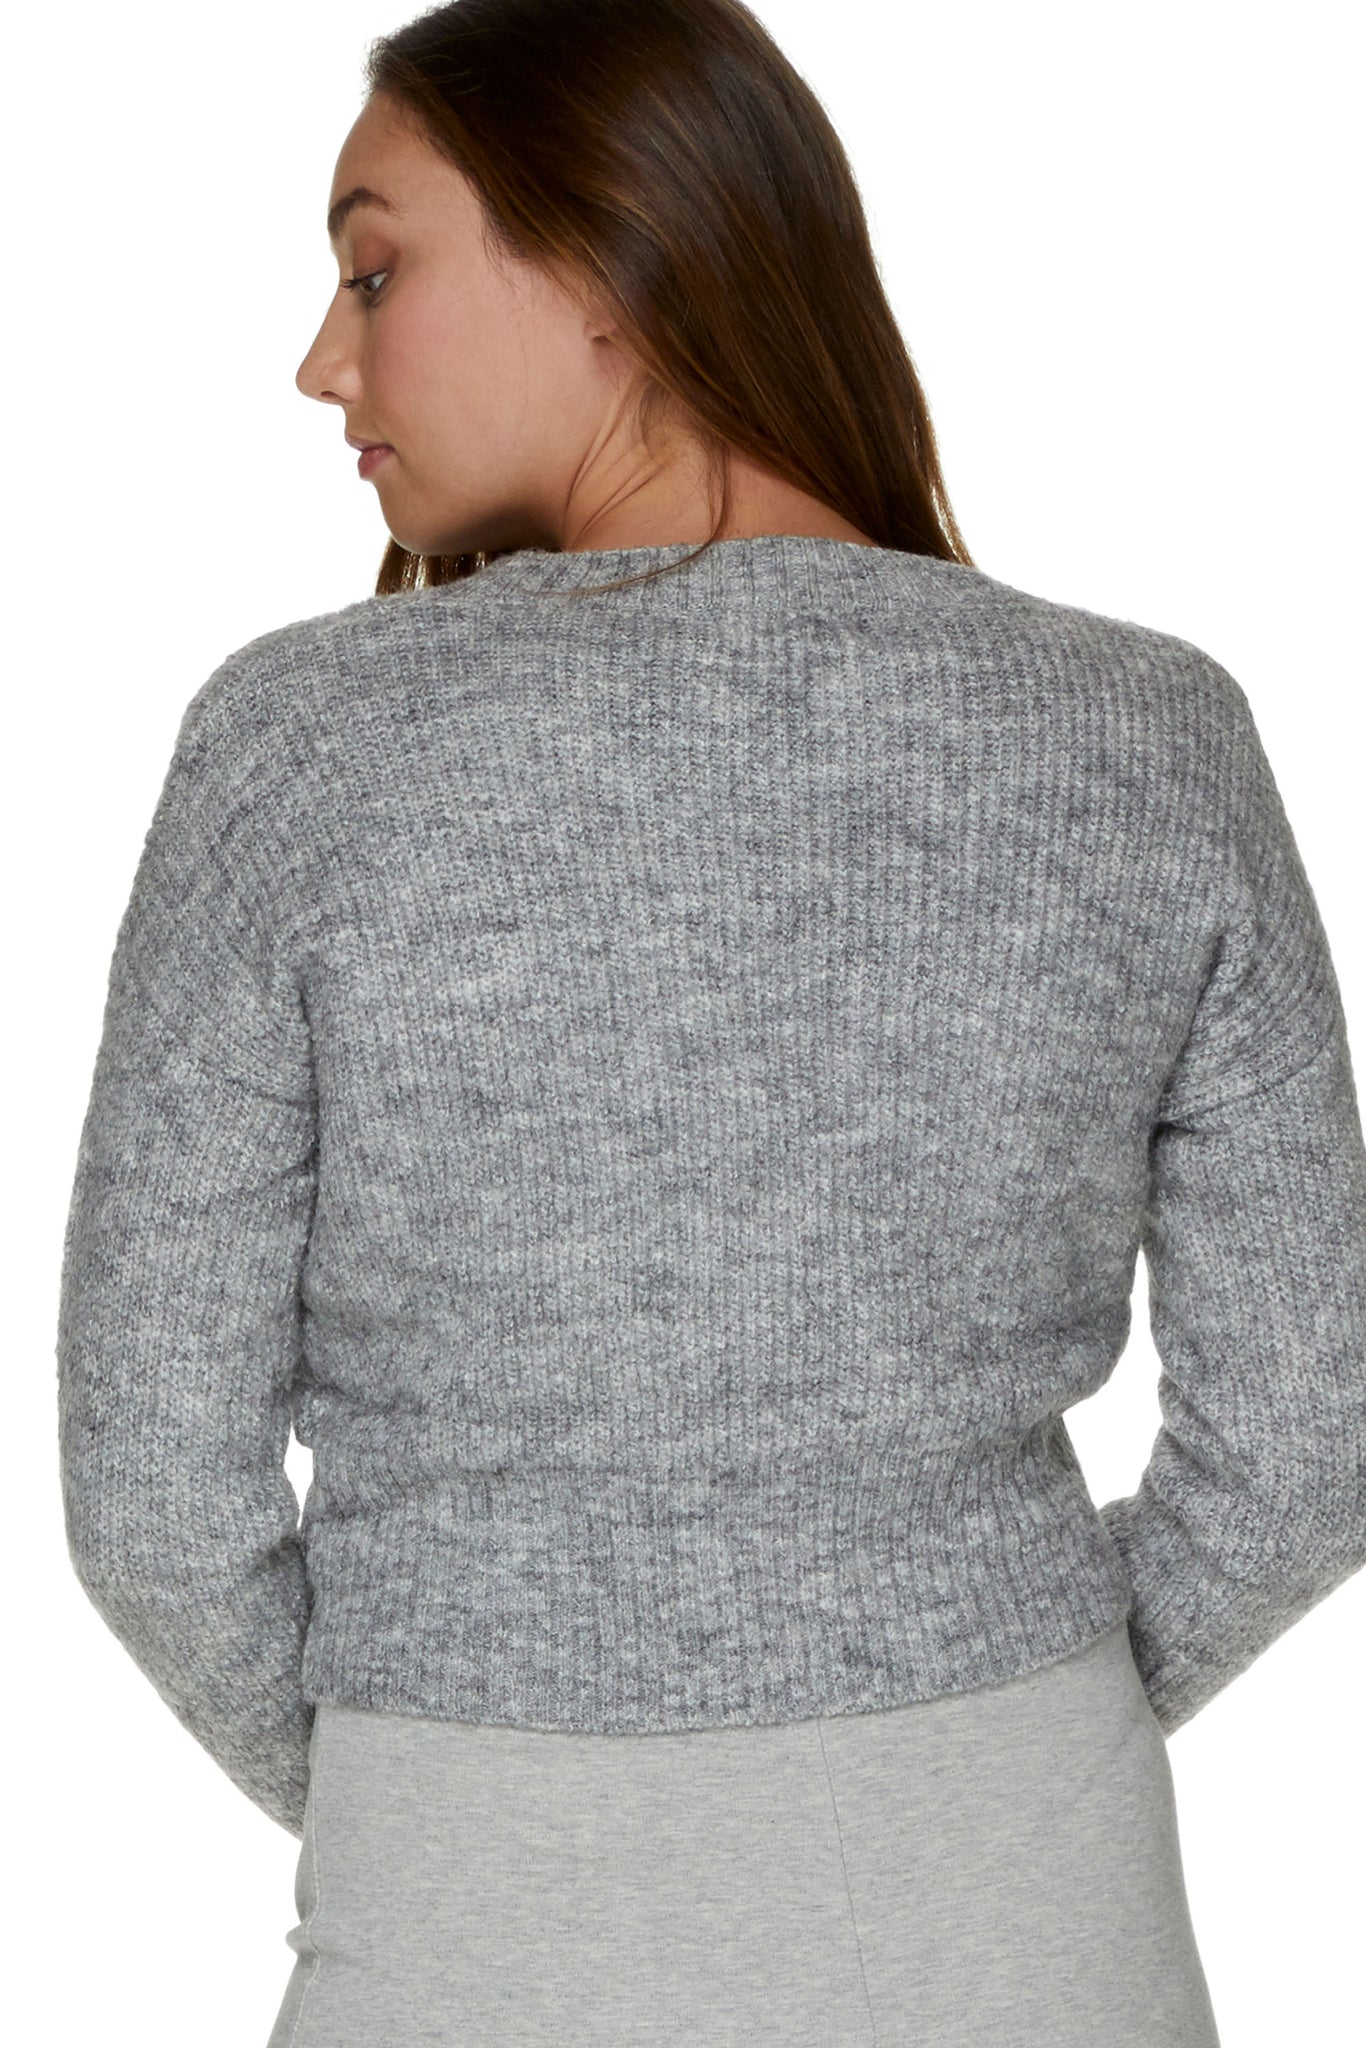 Maternity Grey Jumper 7